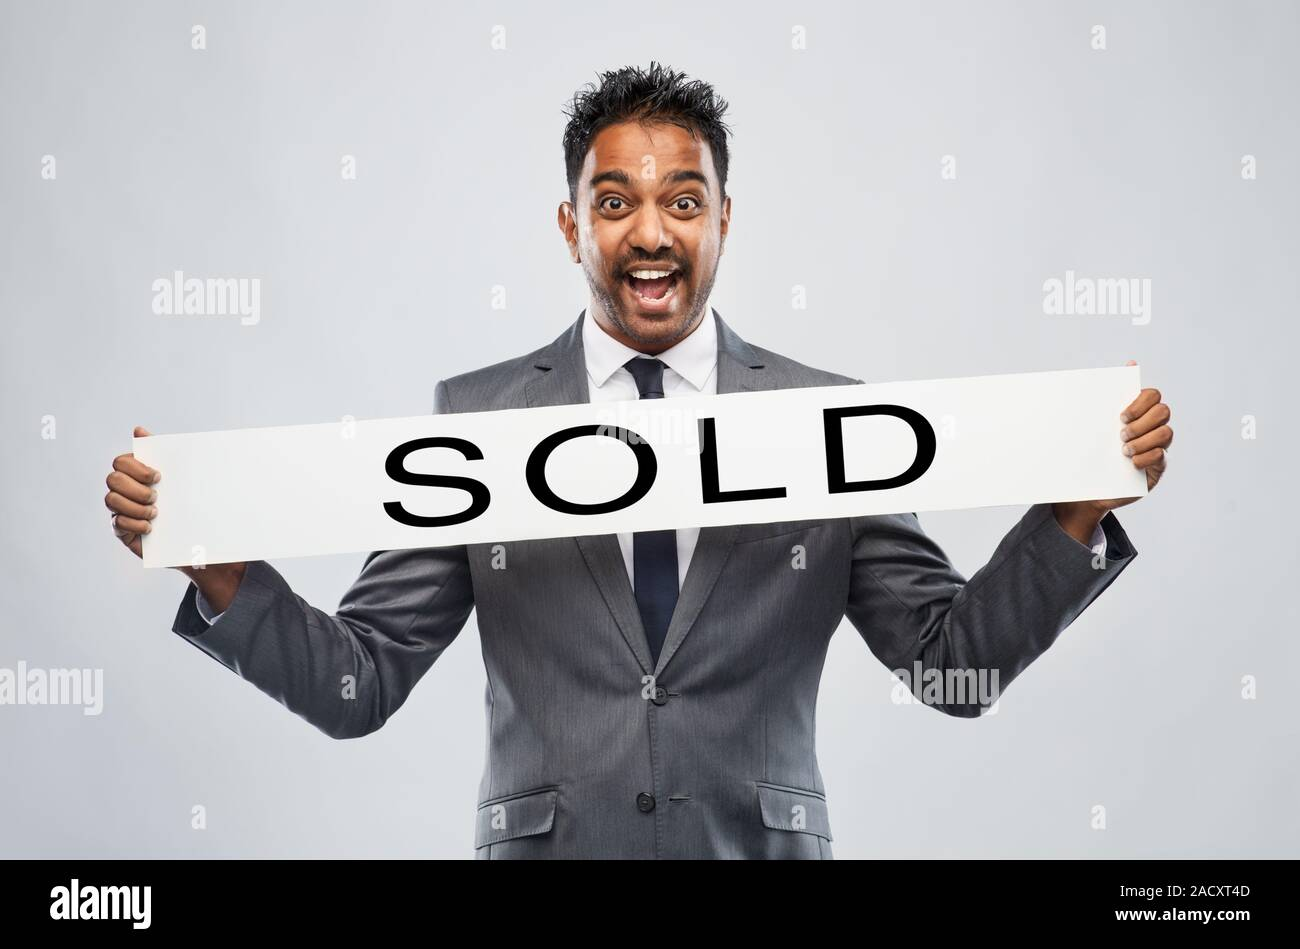 Real Estate Business Realty Sale And Success Concept Happy Indian Male Realtor With Sold Banner Over Grey Background Stock Photo Alamy